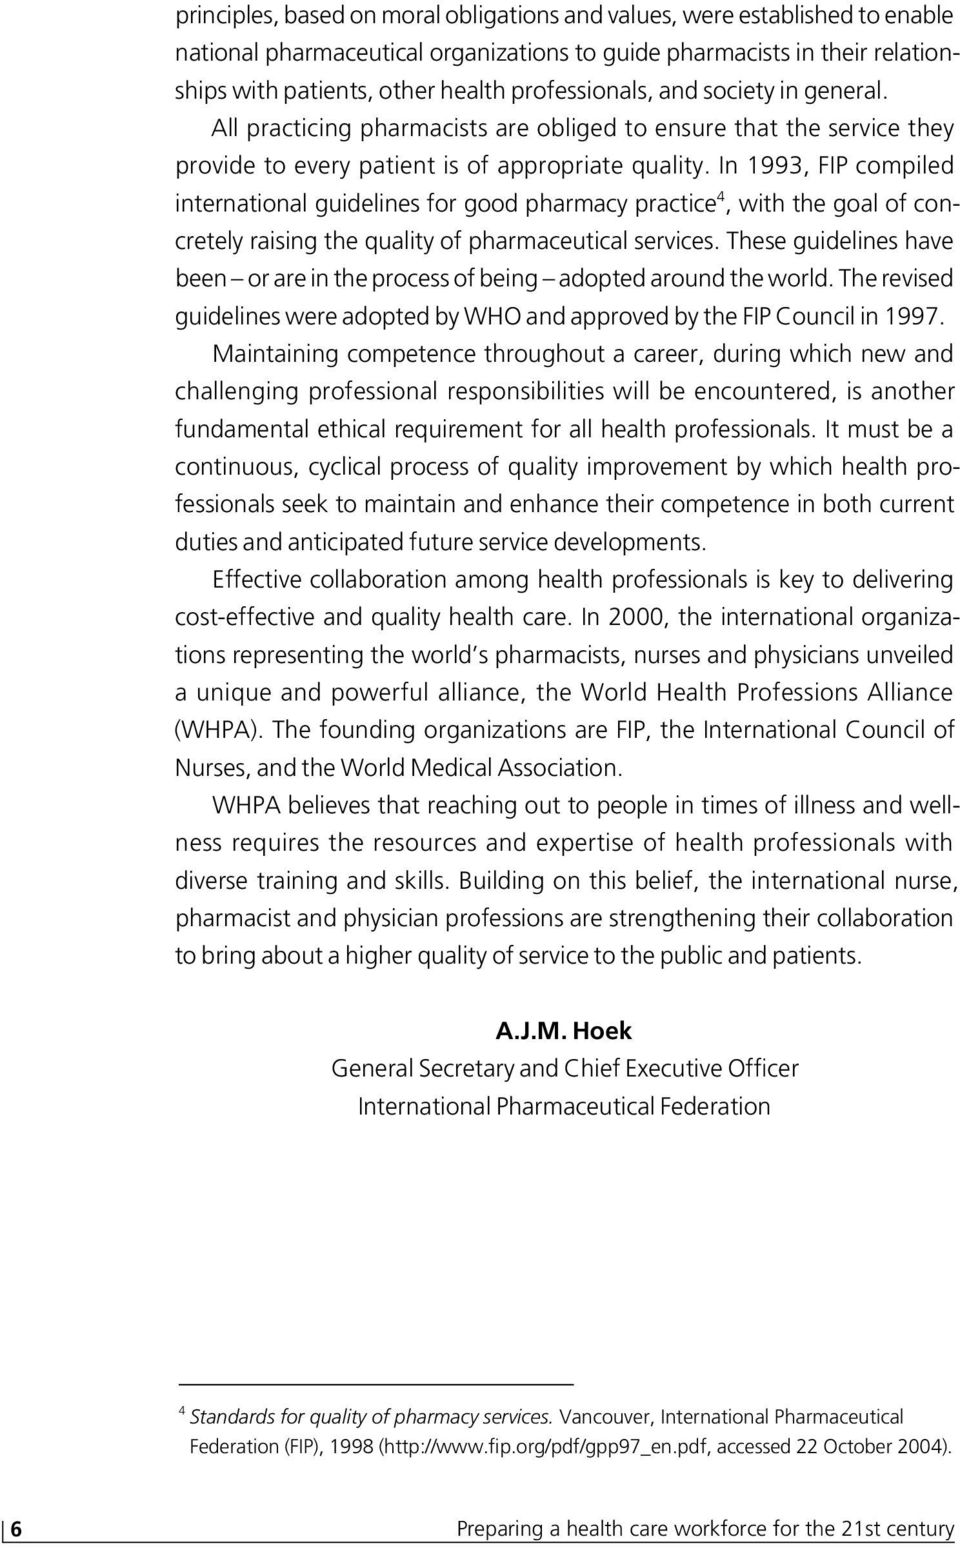 In 1993, FIP compiled international guidelines for good pharmacy practice 4, with the goal of concretely raising the quality of pharmaceutical services.